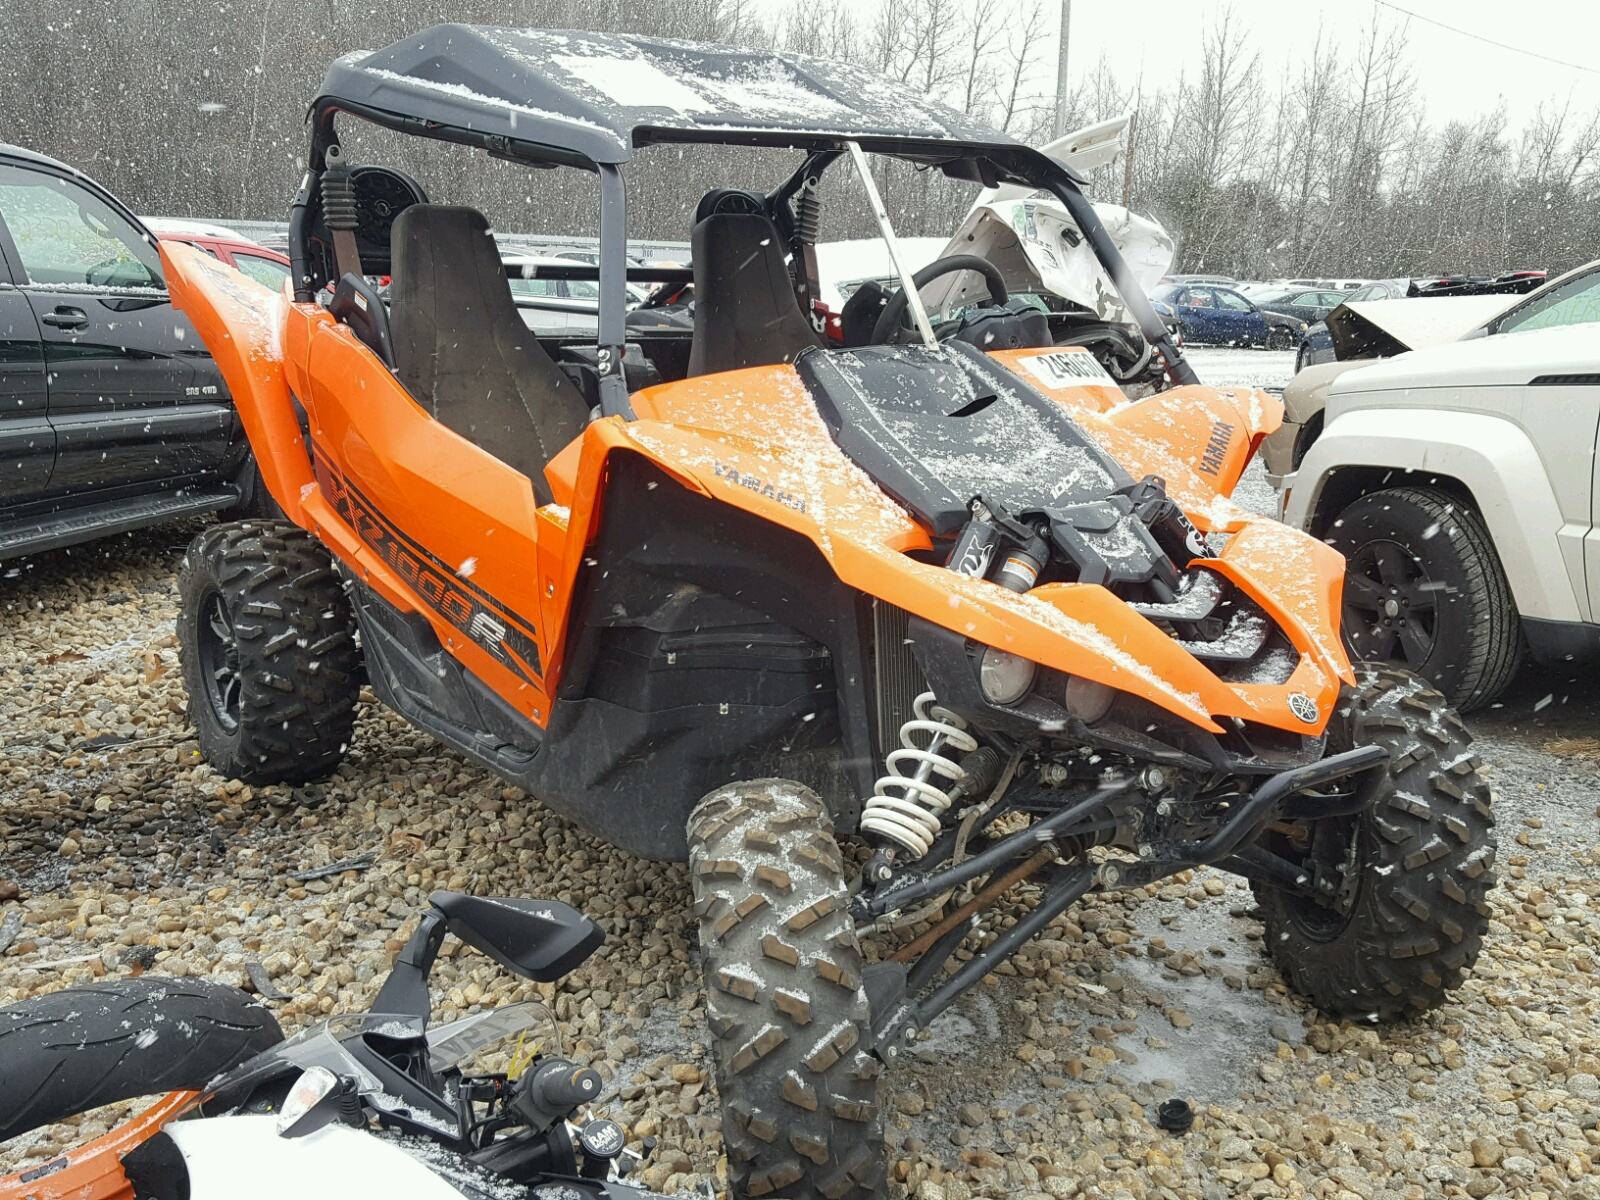 2016 yamaha yxz1000 for sale at copart north billerica ma for Yamaha salvage yards